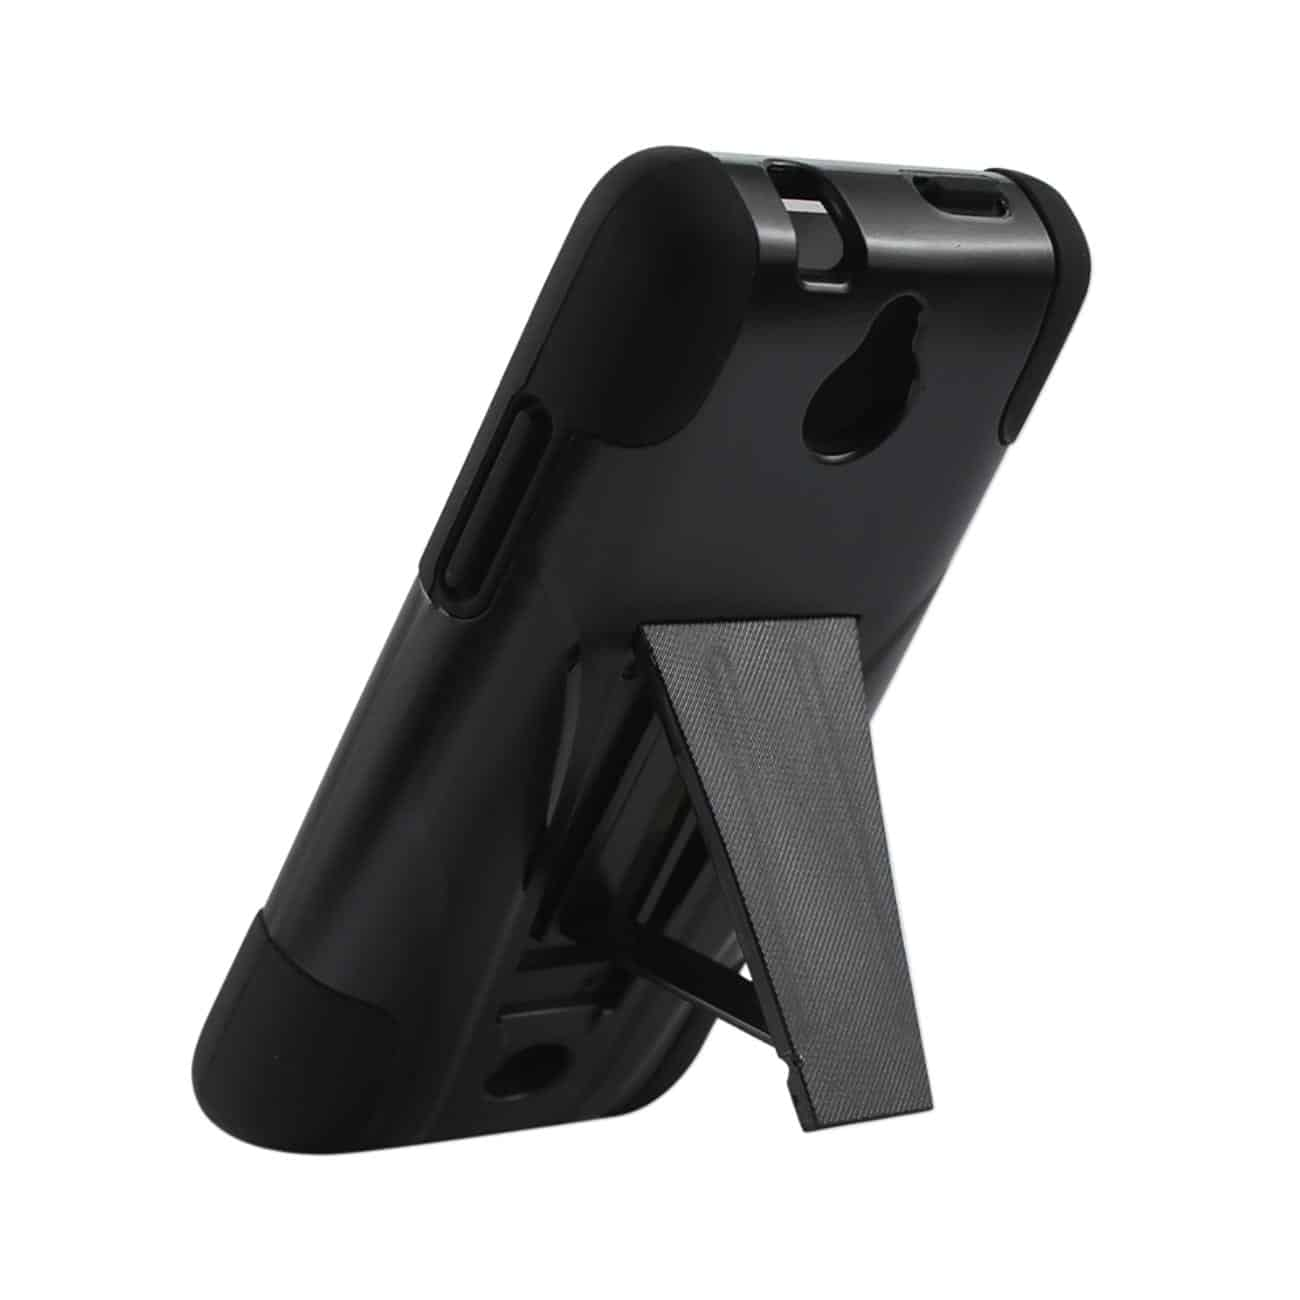 HUAWEI VALIANT HYBRID HEAVY DUTY CASE WITH KICKSTAND IN BLACK